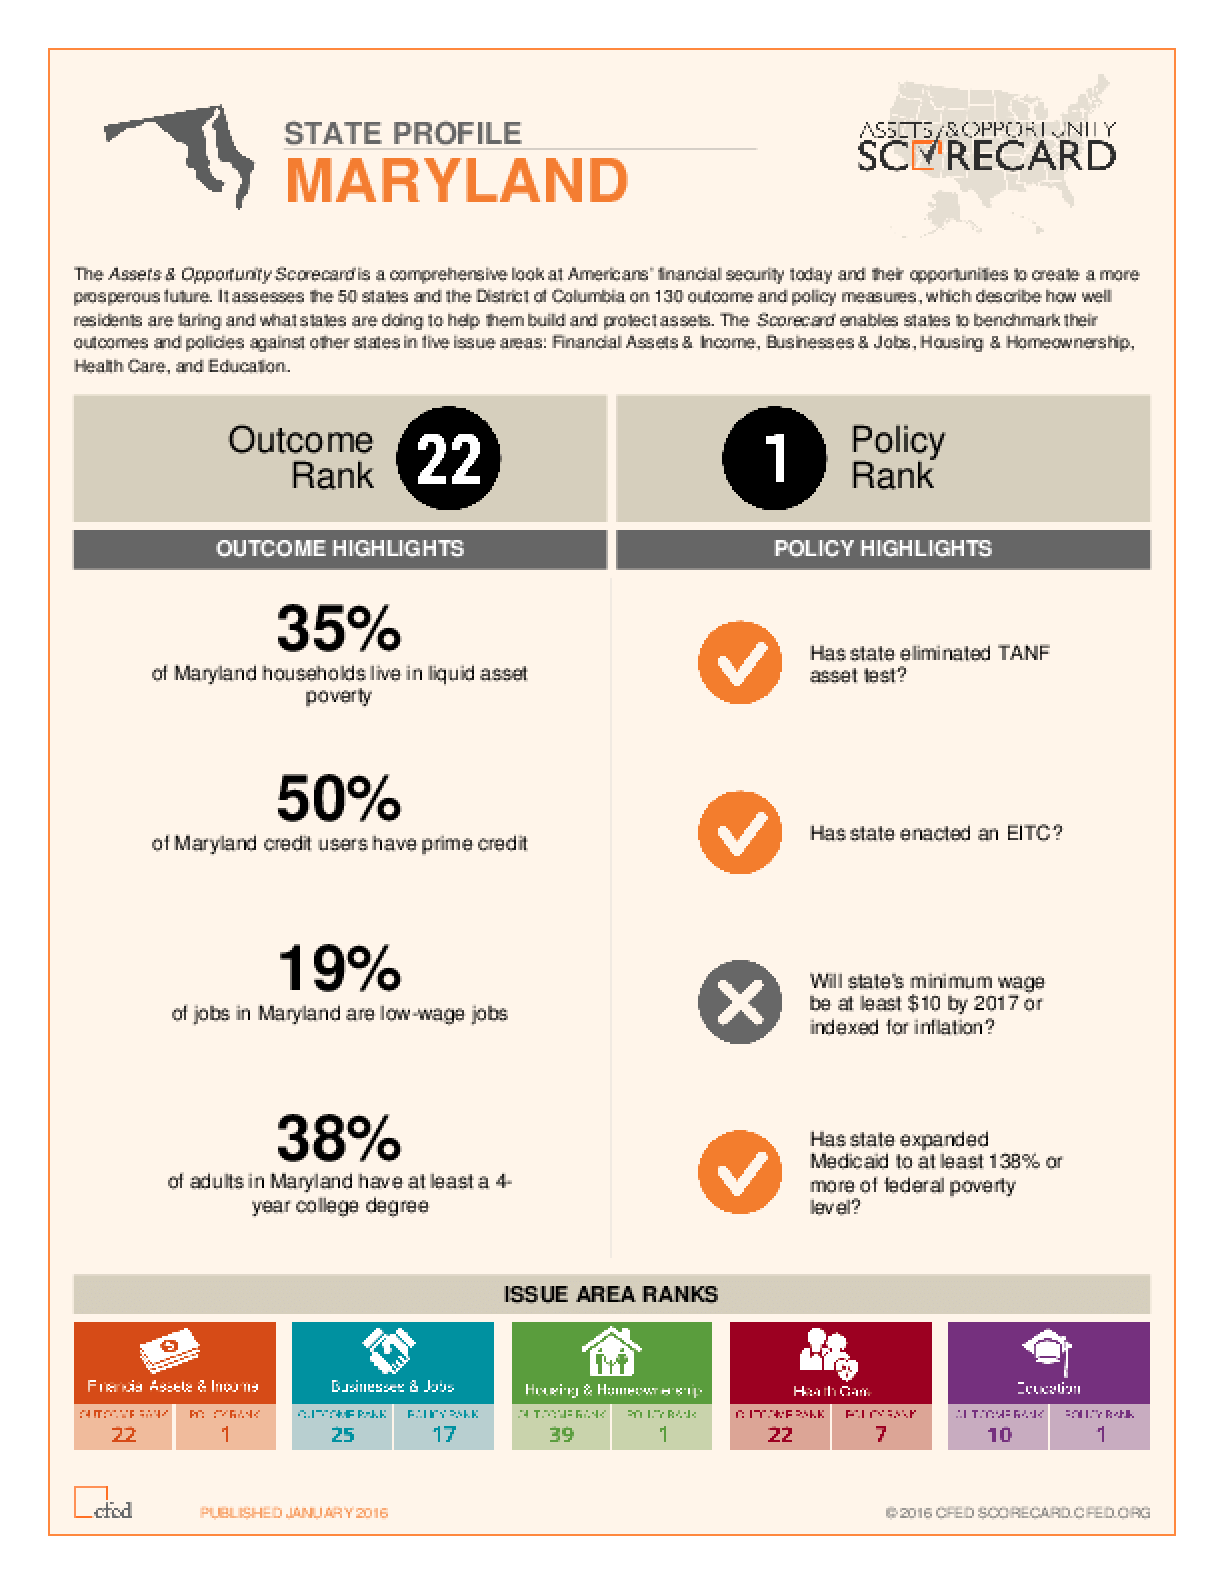 State Profile Maryland: Assets and Opportunity Scorecard